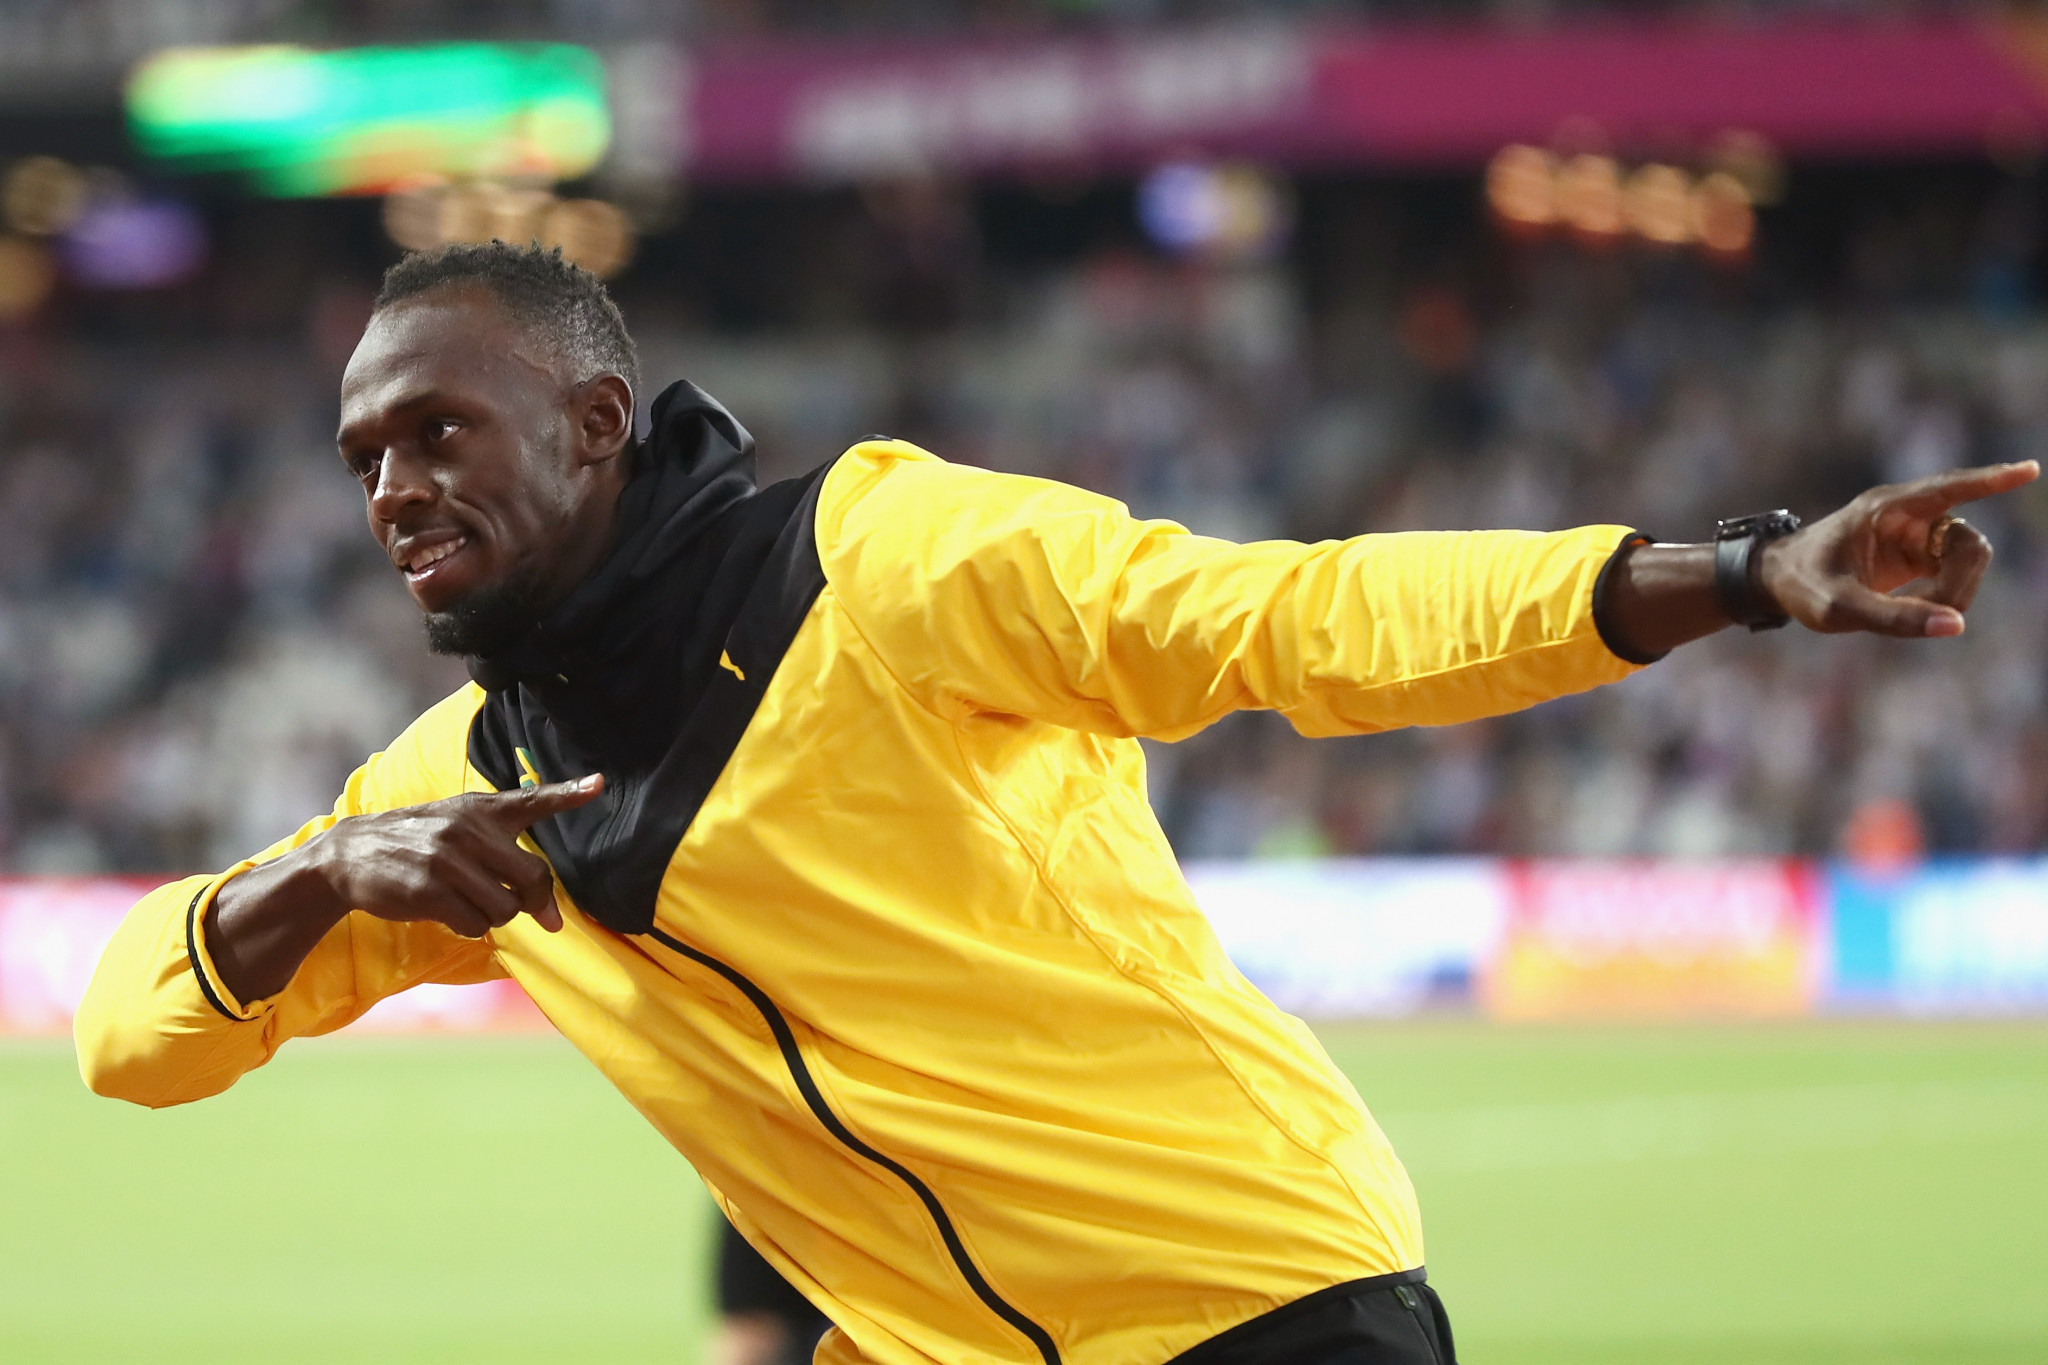 Gold Coast 2018 hope that Usain Bolt will attend the Commonwealth Games as an ambassador ©Getty Images